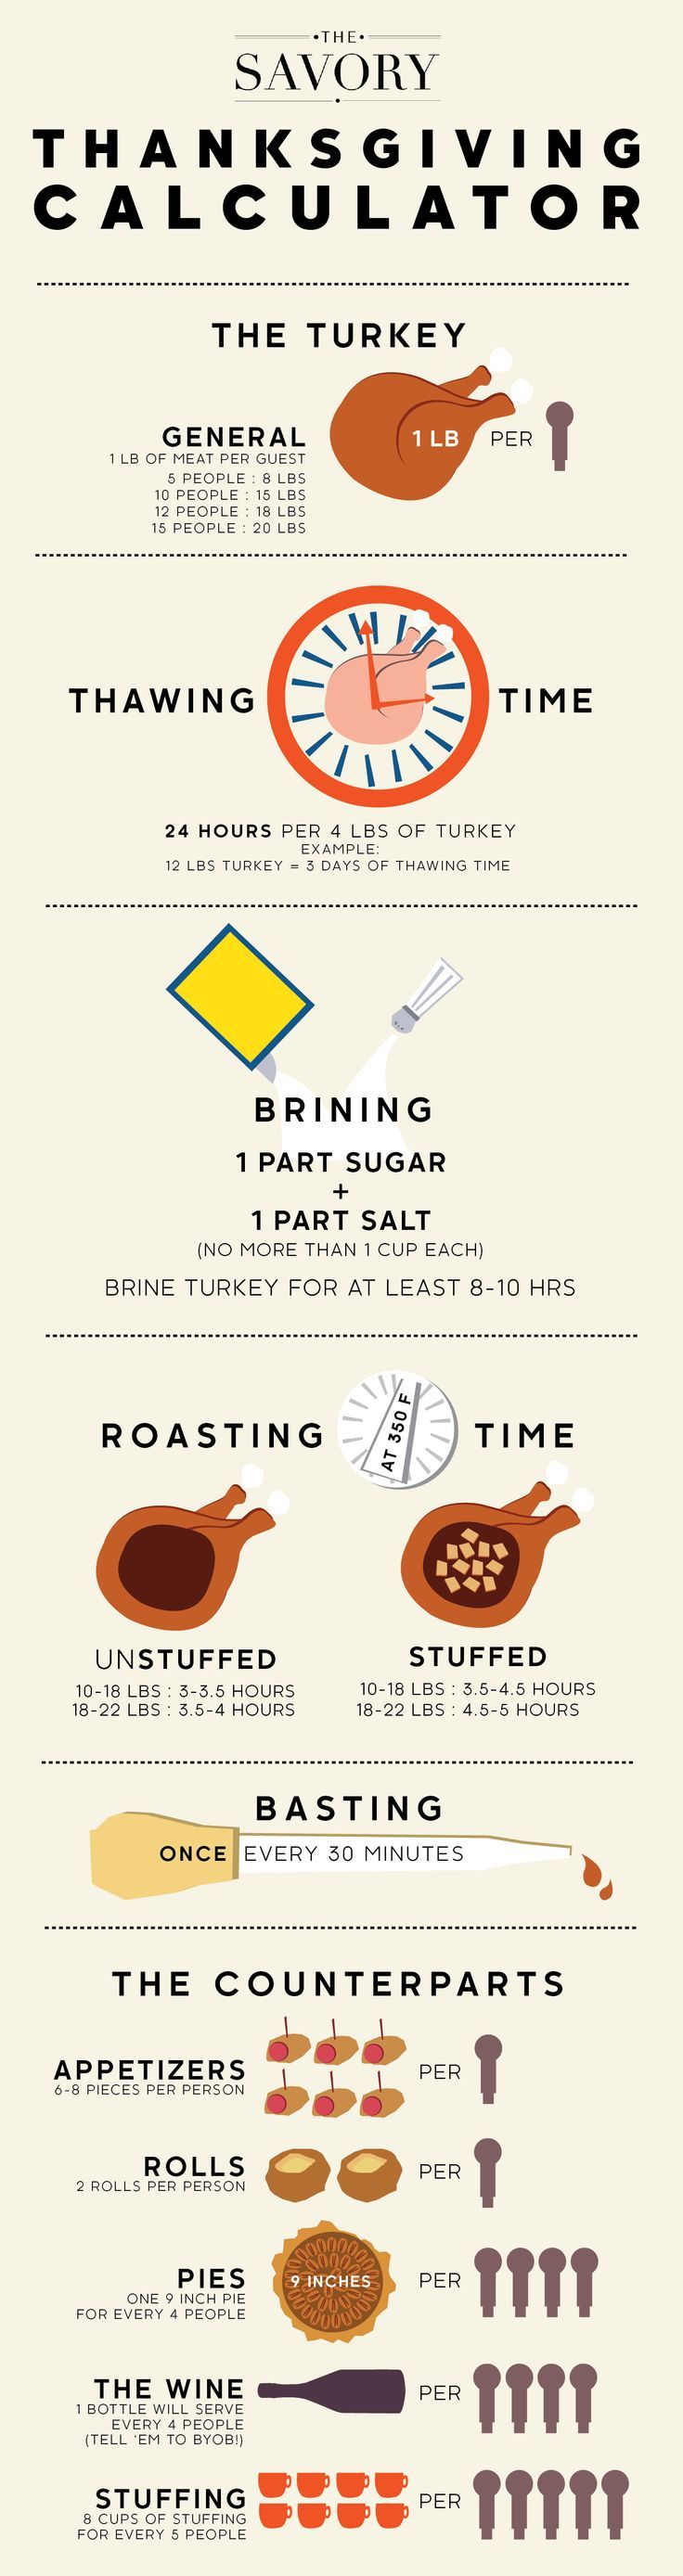 "<a href=""http://www.thesavory.com/food/turkey-math-basic-thanksgiving-equations.html"" target=""blank""> Thanksgiving Calculator </a>"